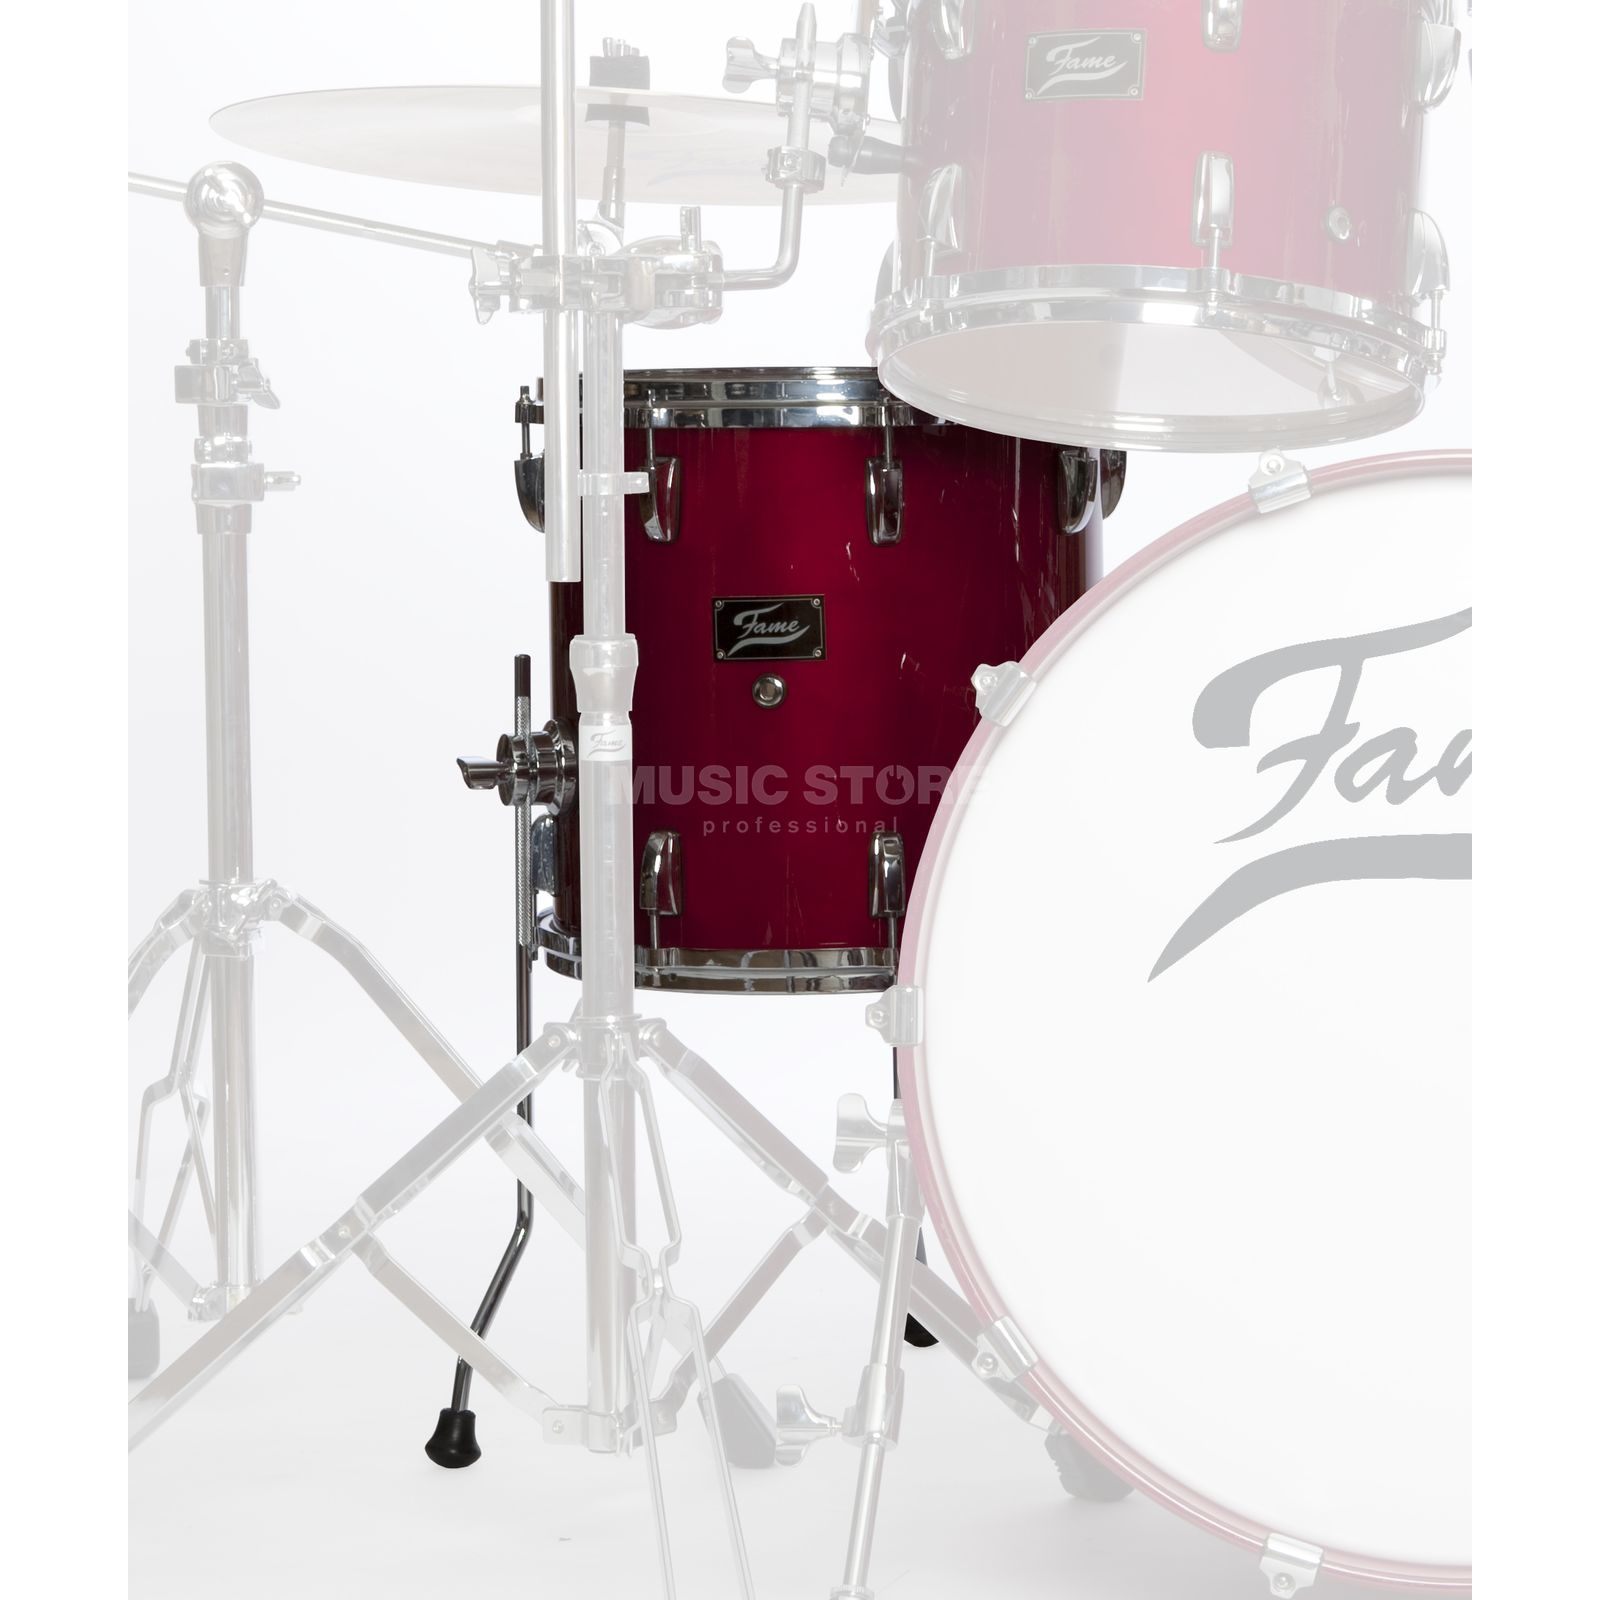 "Fame Tom basse FMP16""x16"", #Cherry Red Image du produit"